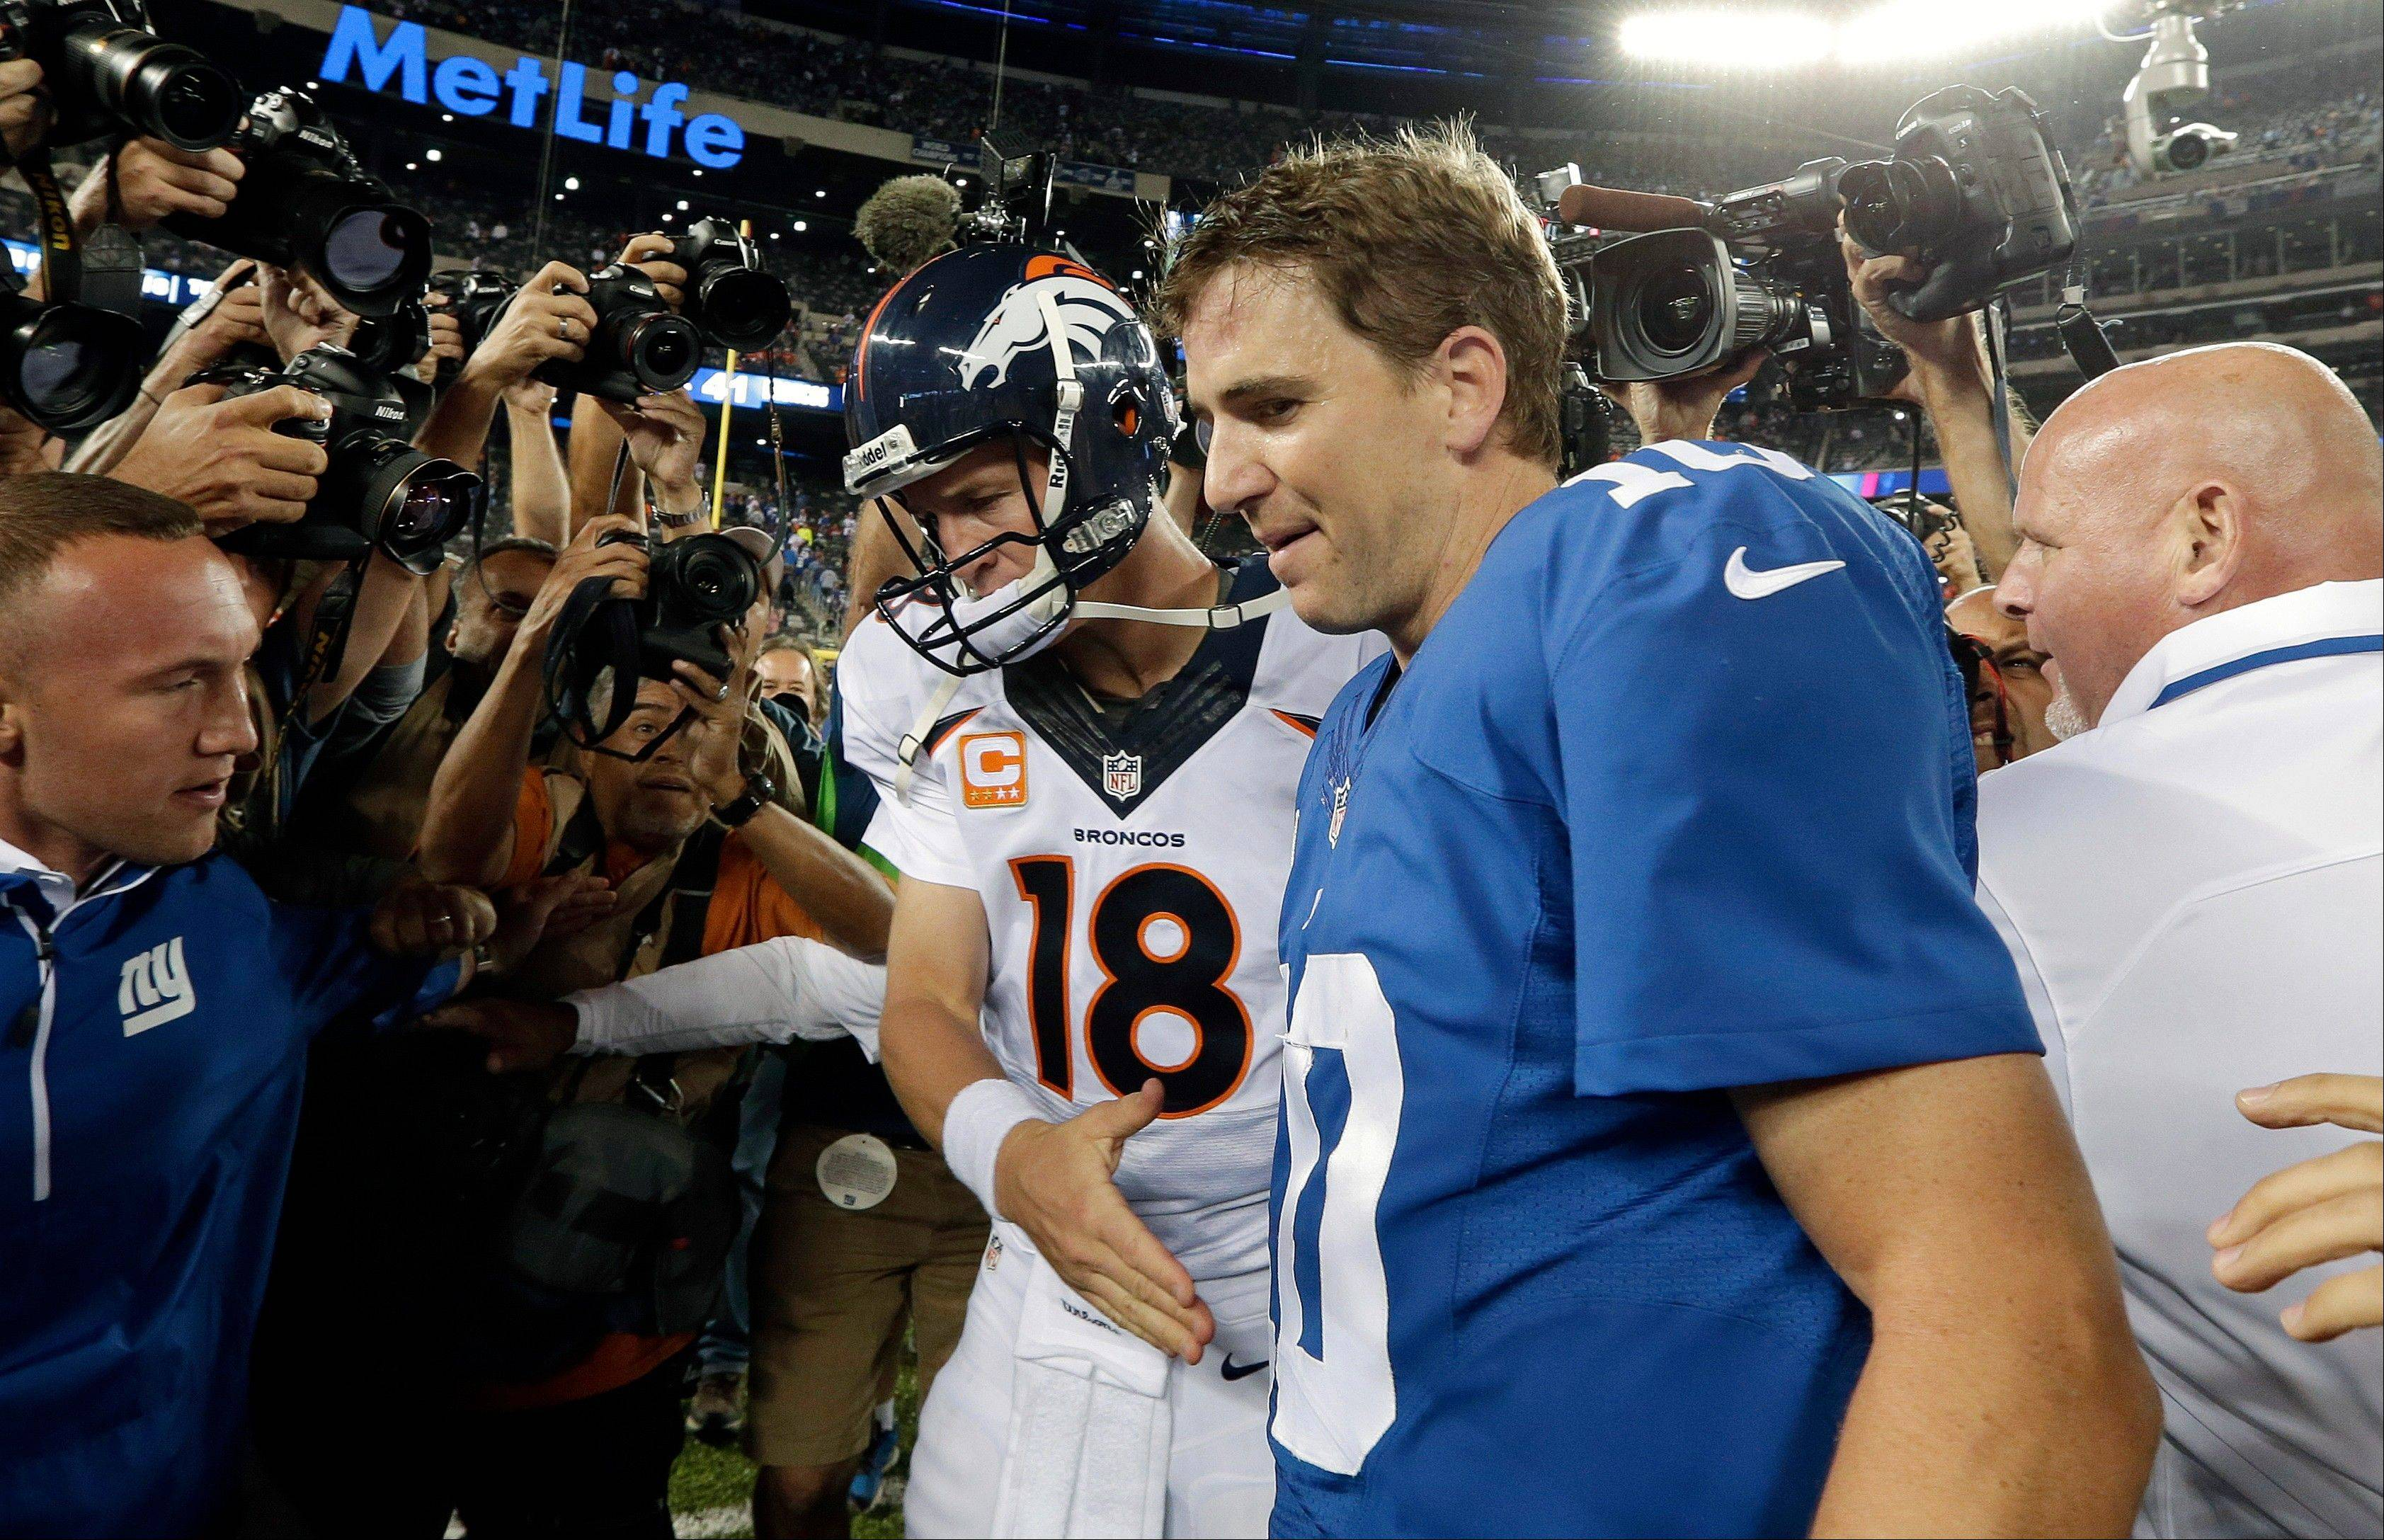 Denver Broncos quarterback Peyton Manning (18) shakes hands with his brother New York Giants' quarterback Eli Manning (10) after an NFL football game Sunday, Sept. 15, 2013, in East Rutherford, N.J. The Broncos won the game 41-23.